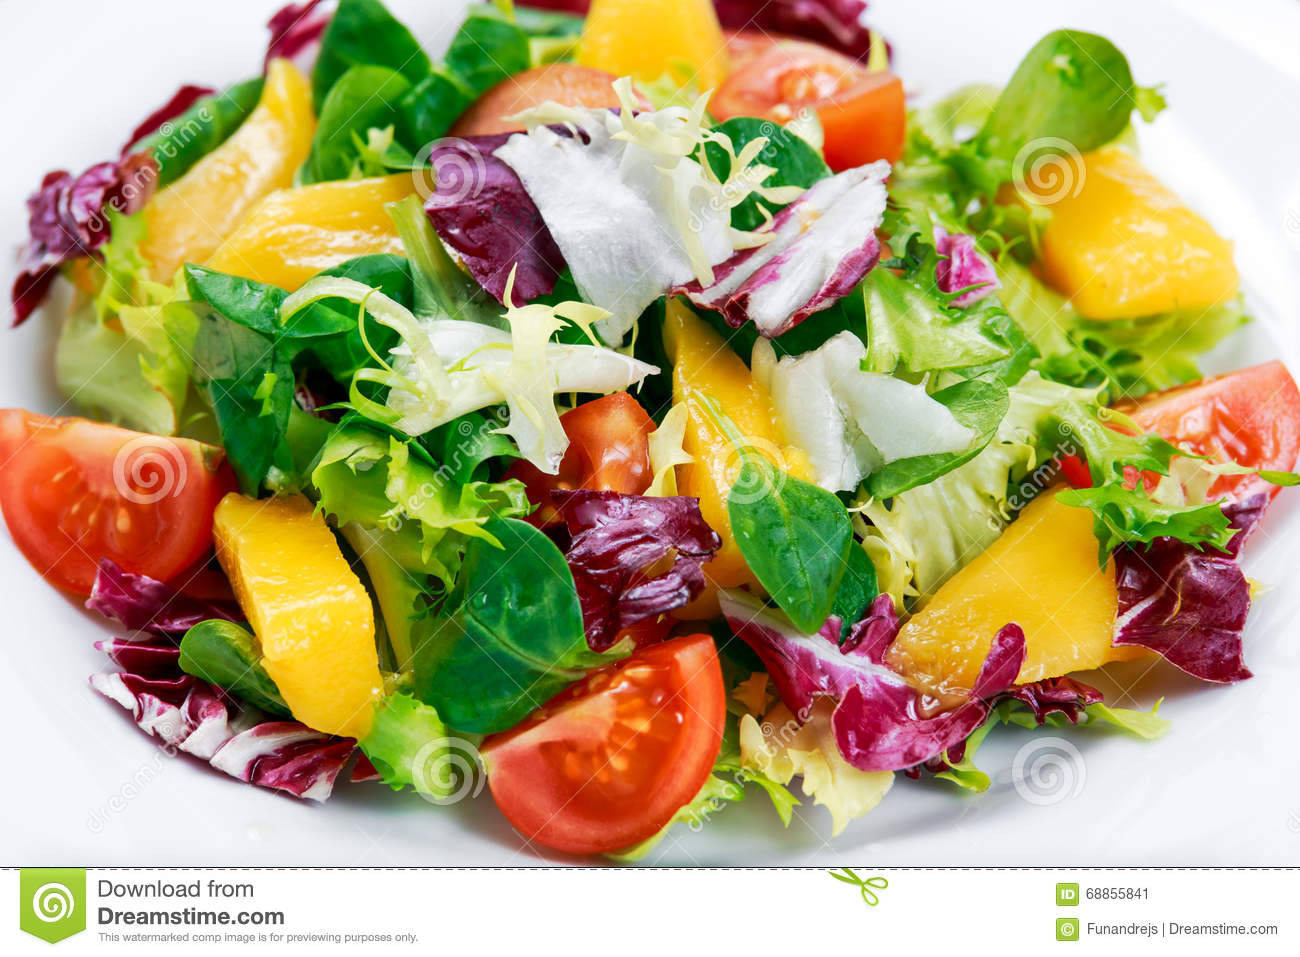 is a tomato a fruit or vegetable mango fruit salad